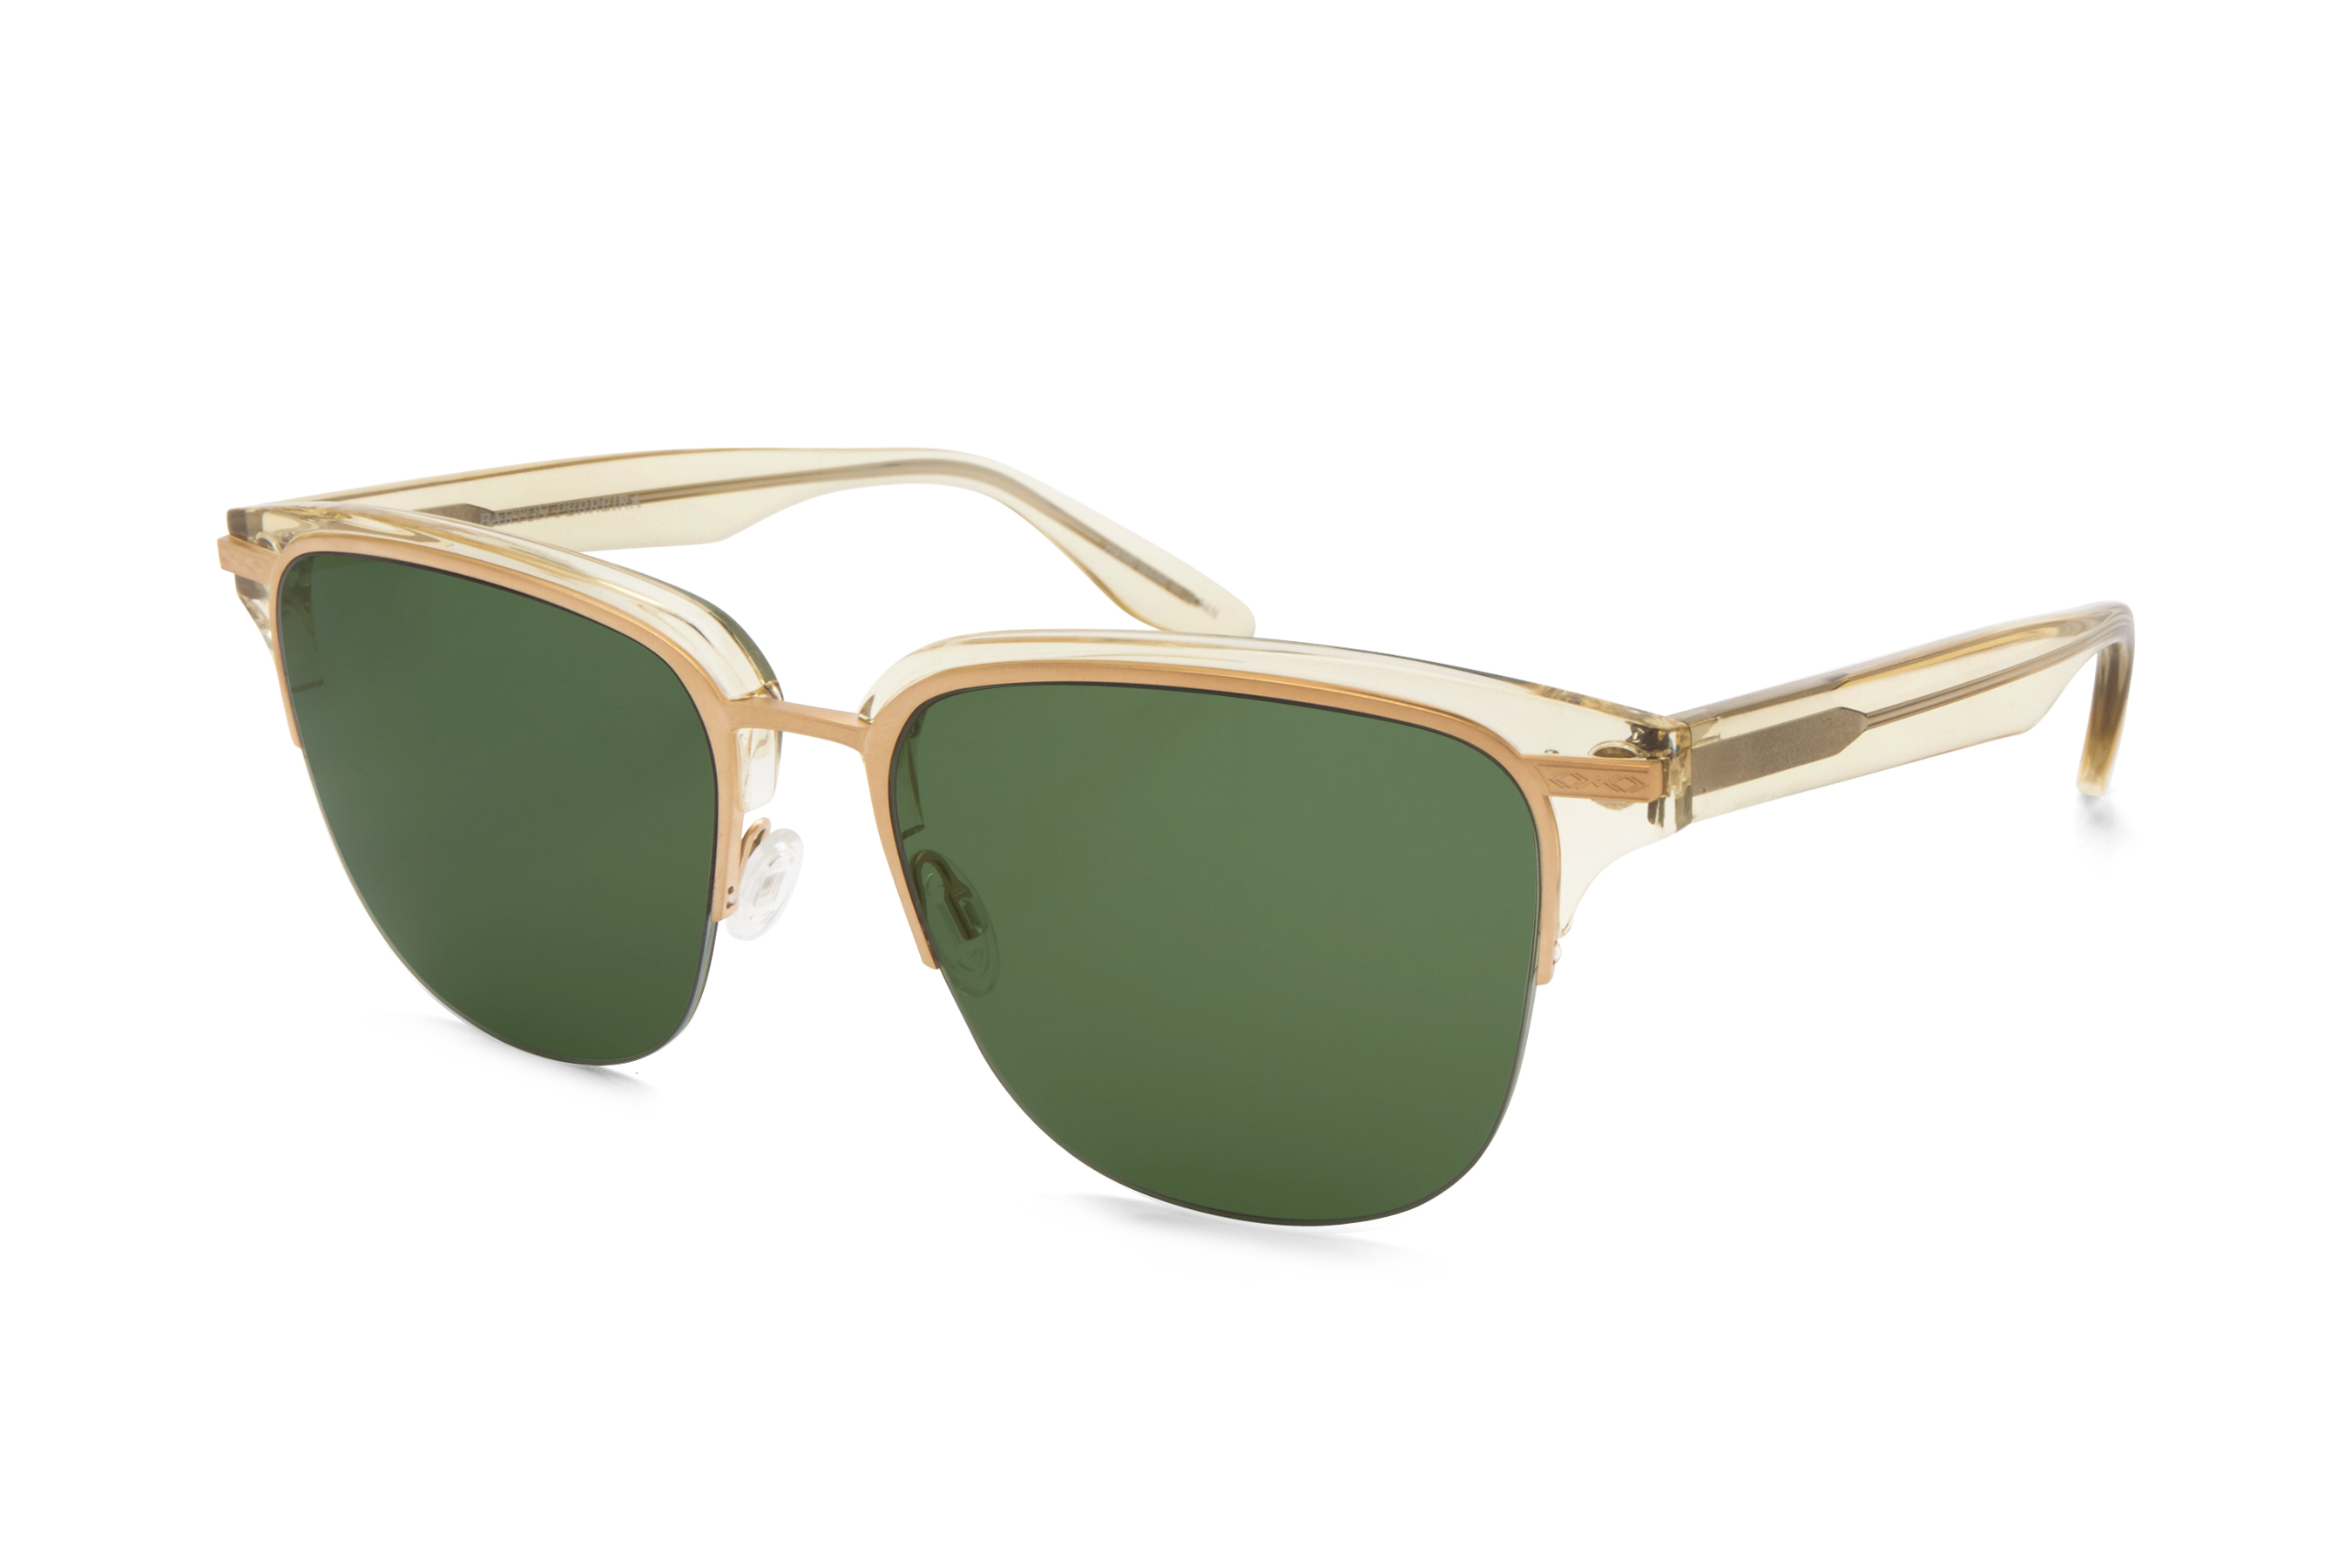 BARTON PERREIRA | frame: GORDY in CHAMPAGNE BRUSHED GOLD